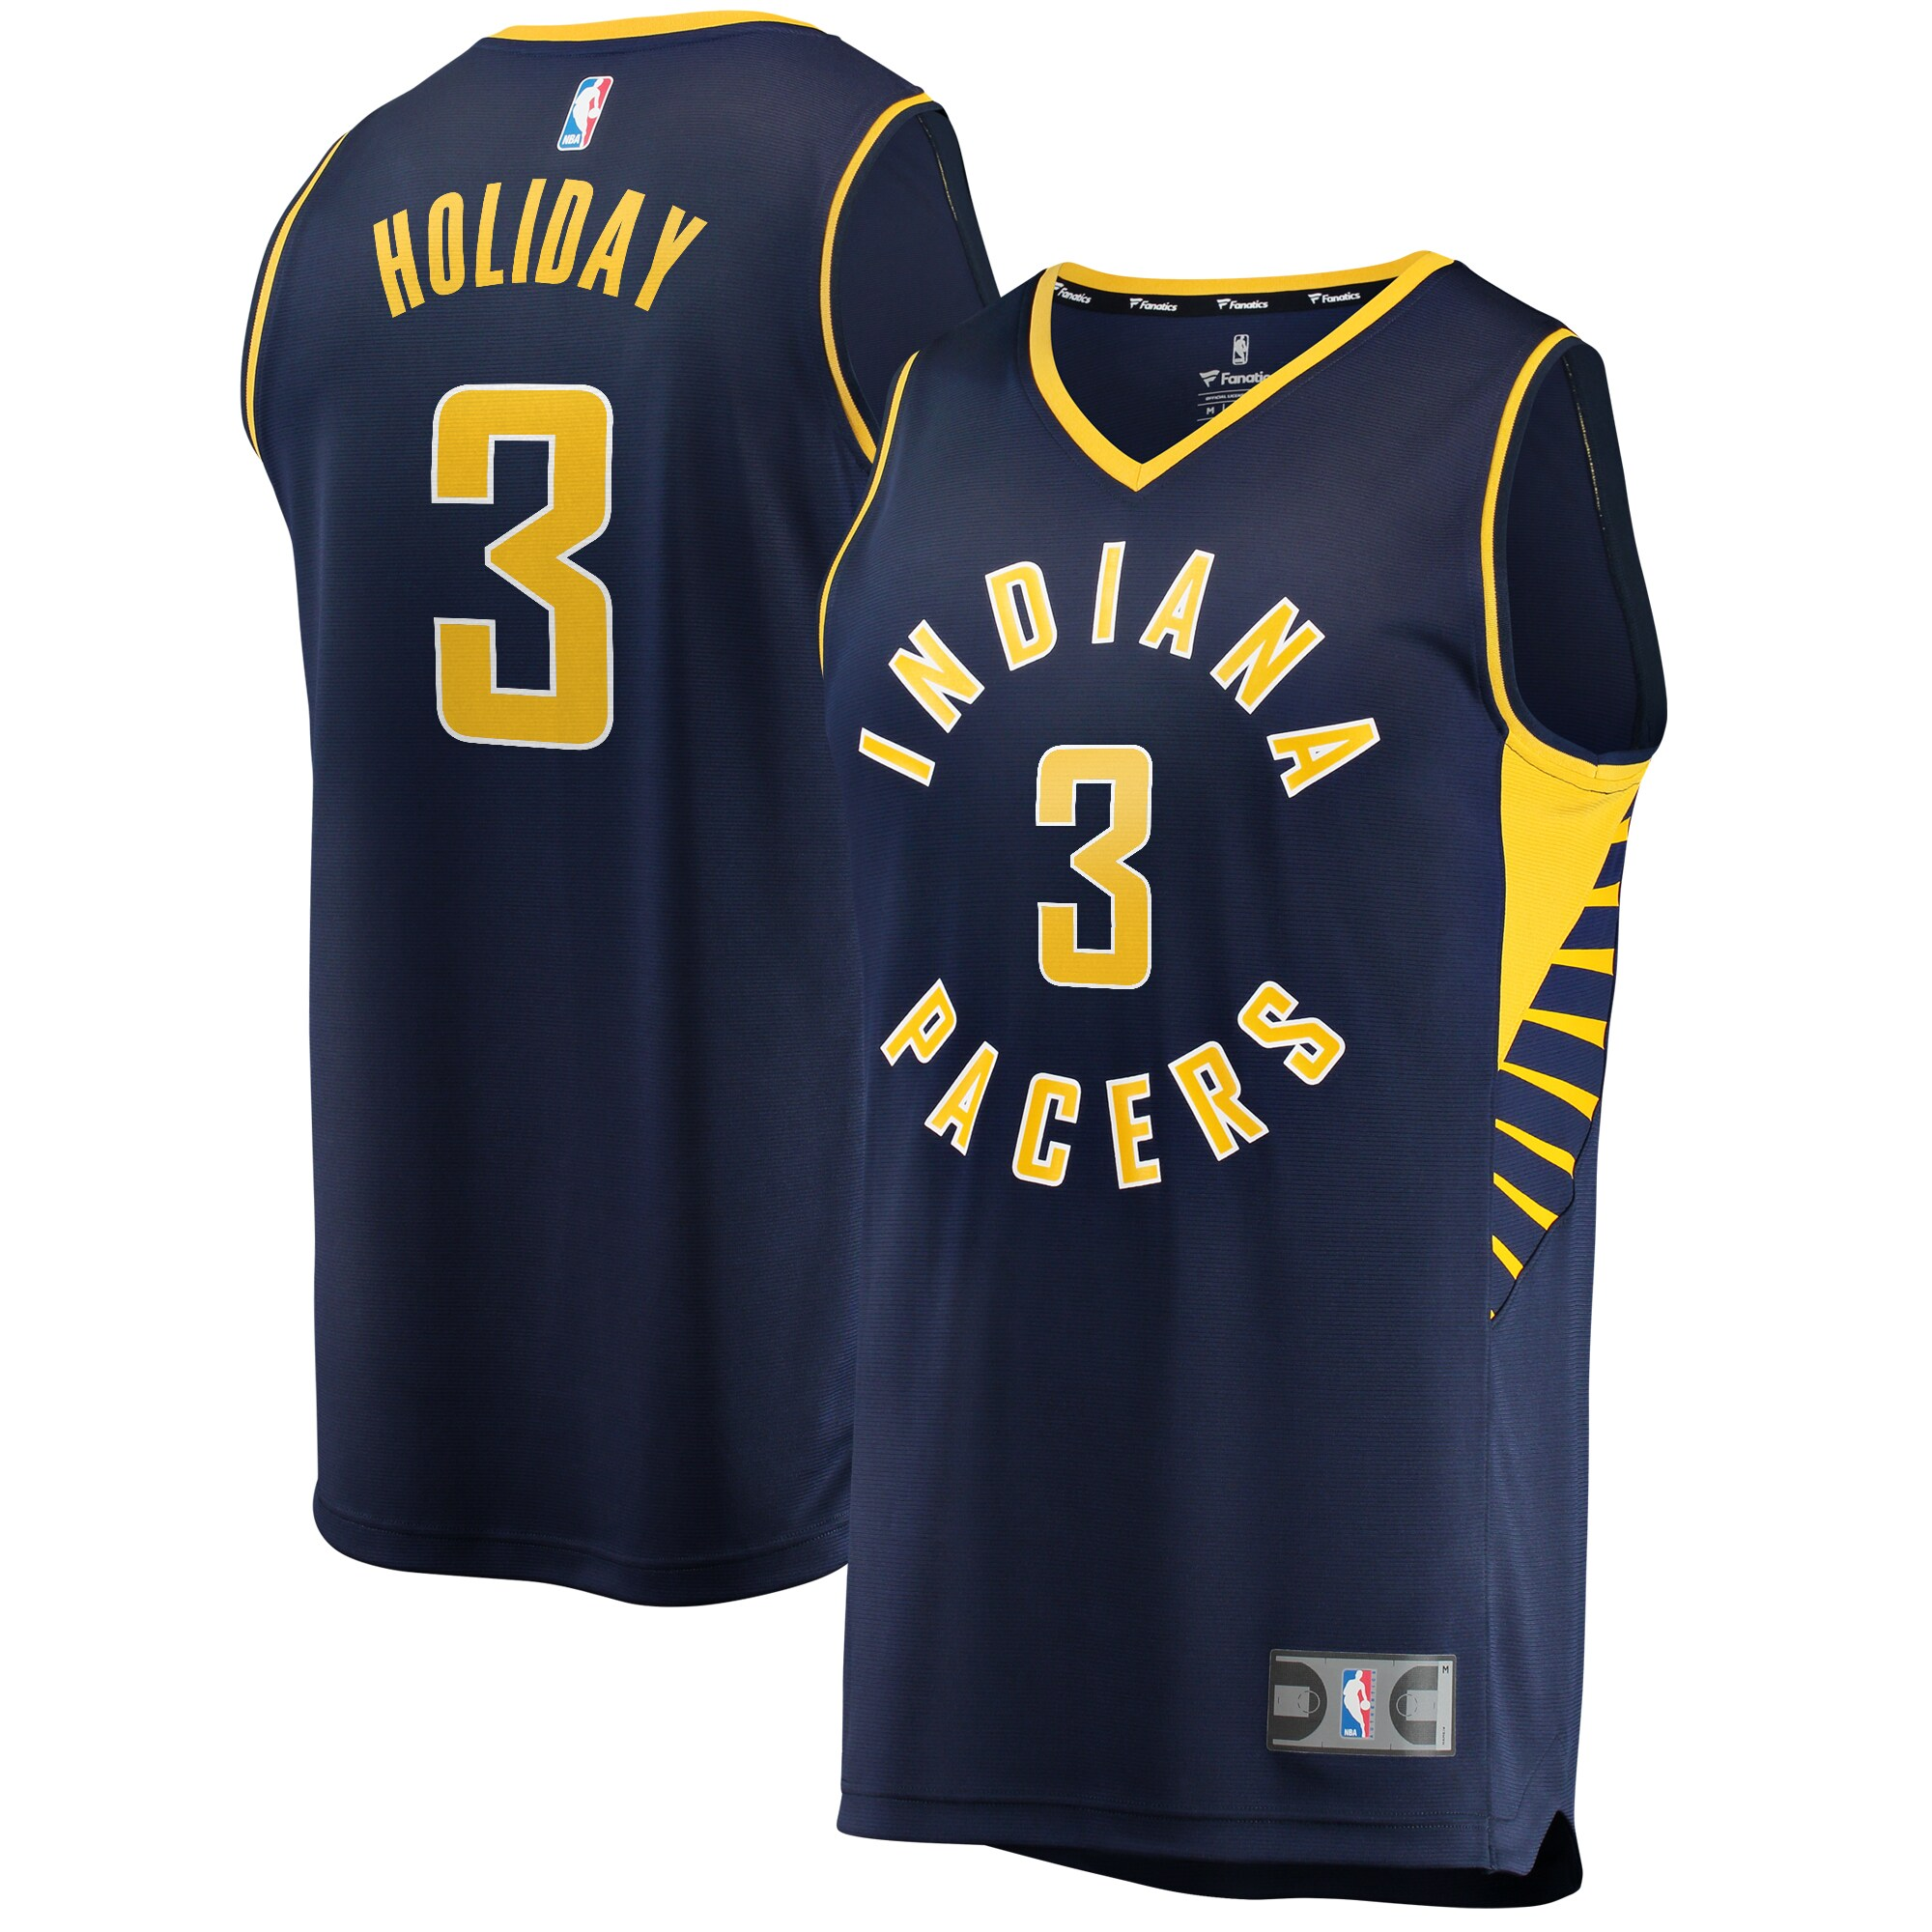 Aaron Holiday Indiana Pacers Fanatics Branded Youth Fast Break Replica Player Jersey - Icon Edition - Navy